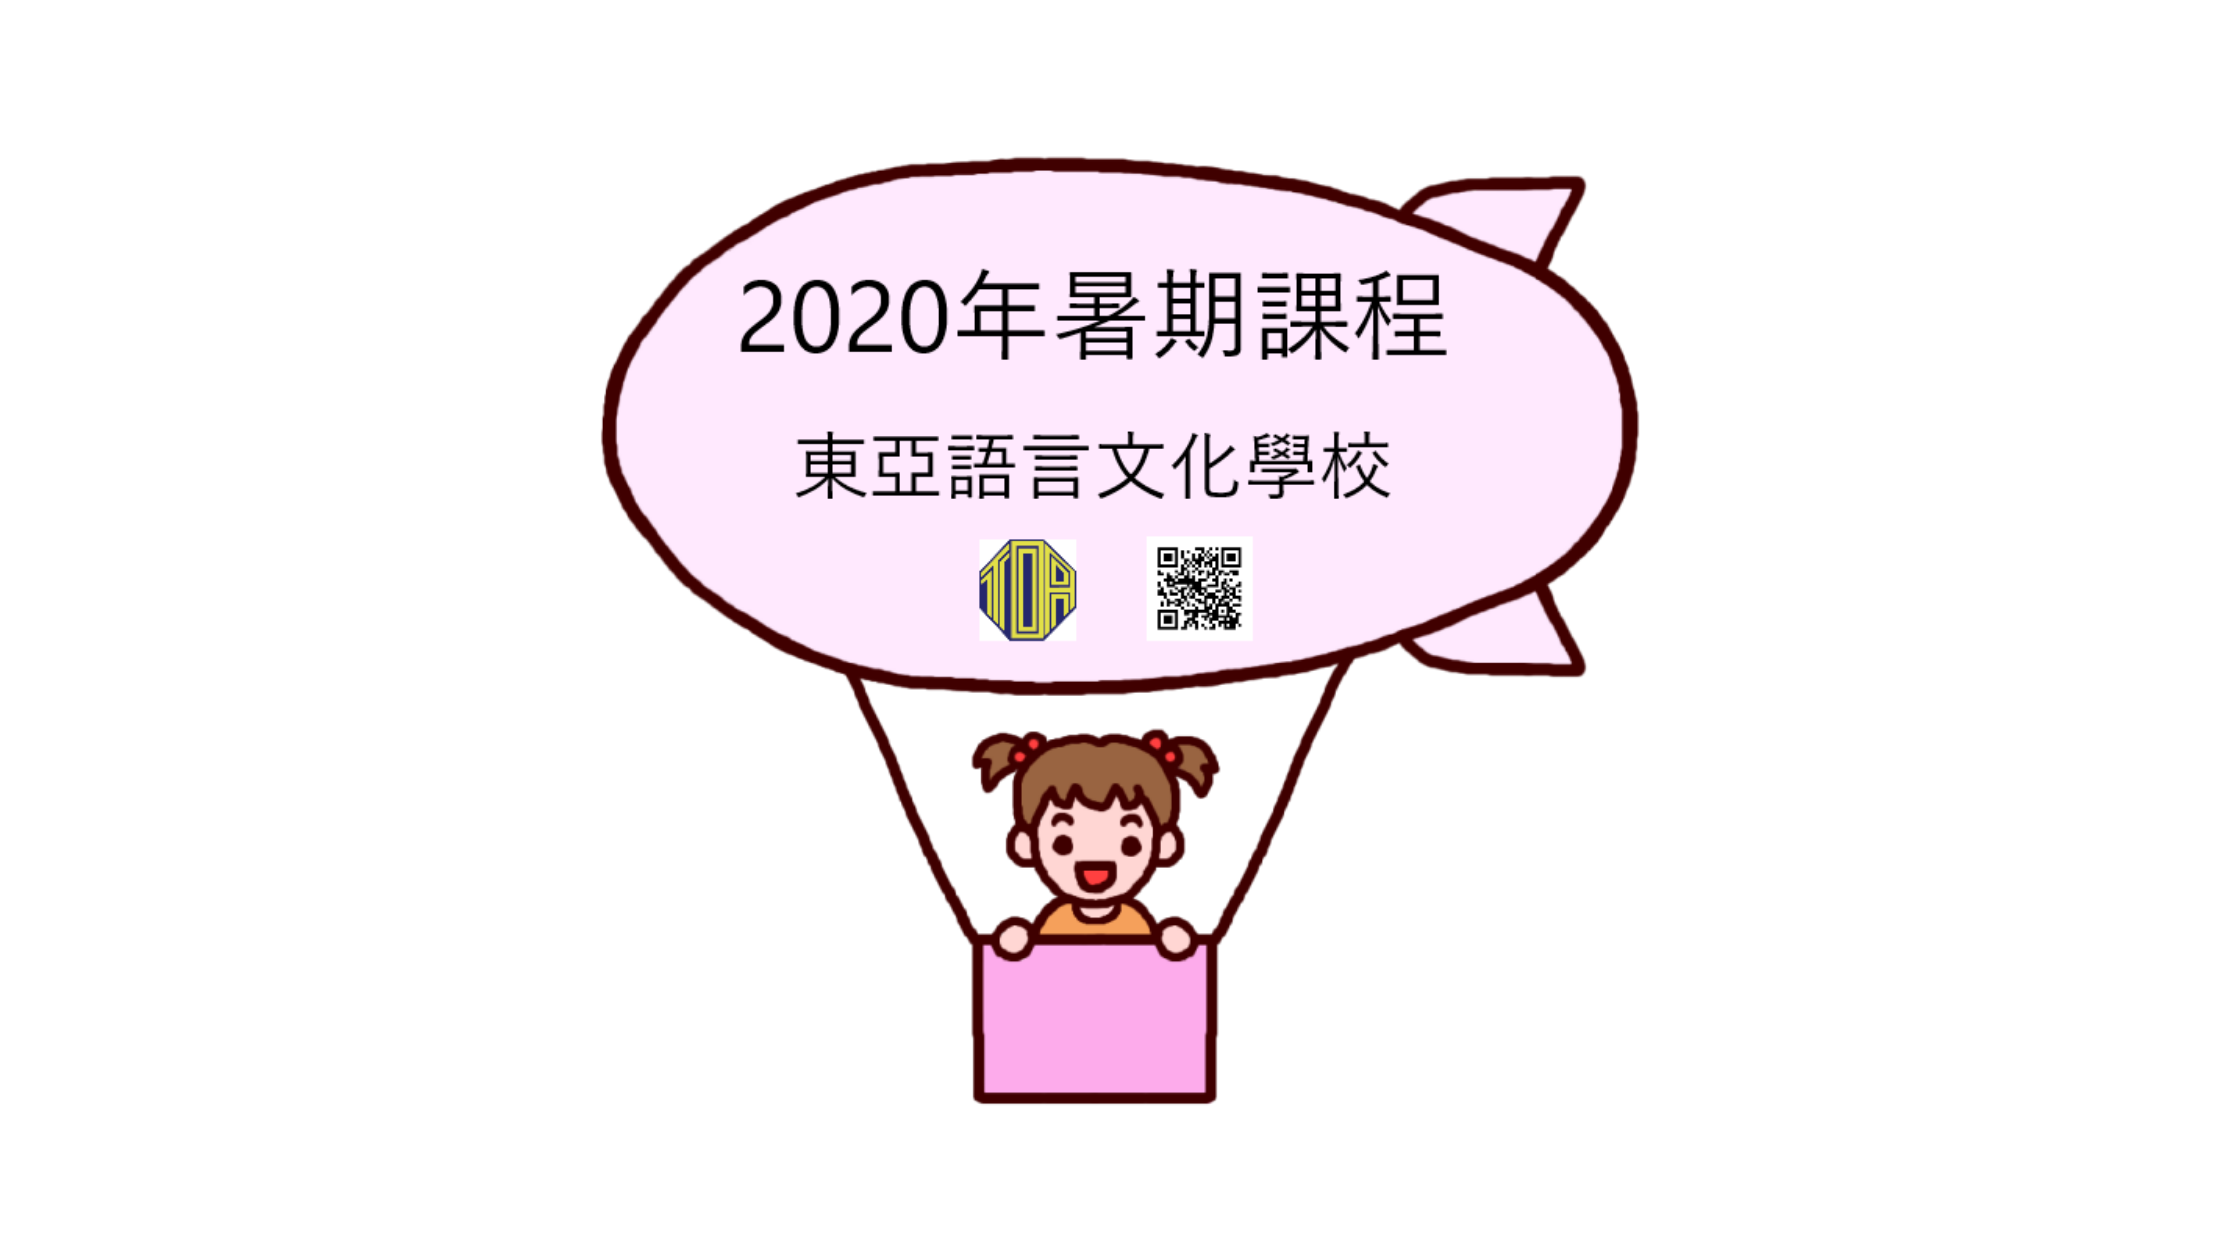 hongkong toa japanese school cantonese chinese summer courses 香港 東亞 日文 日本語 広東語 北京語 暑期課程